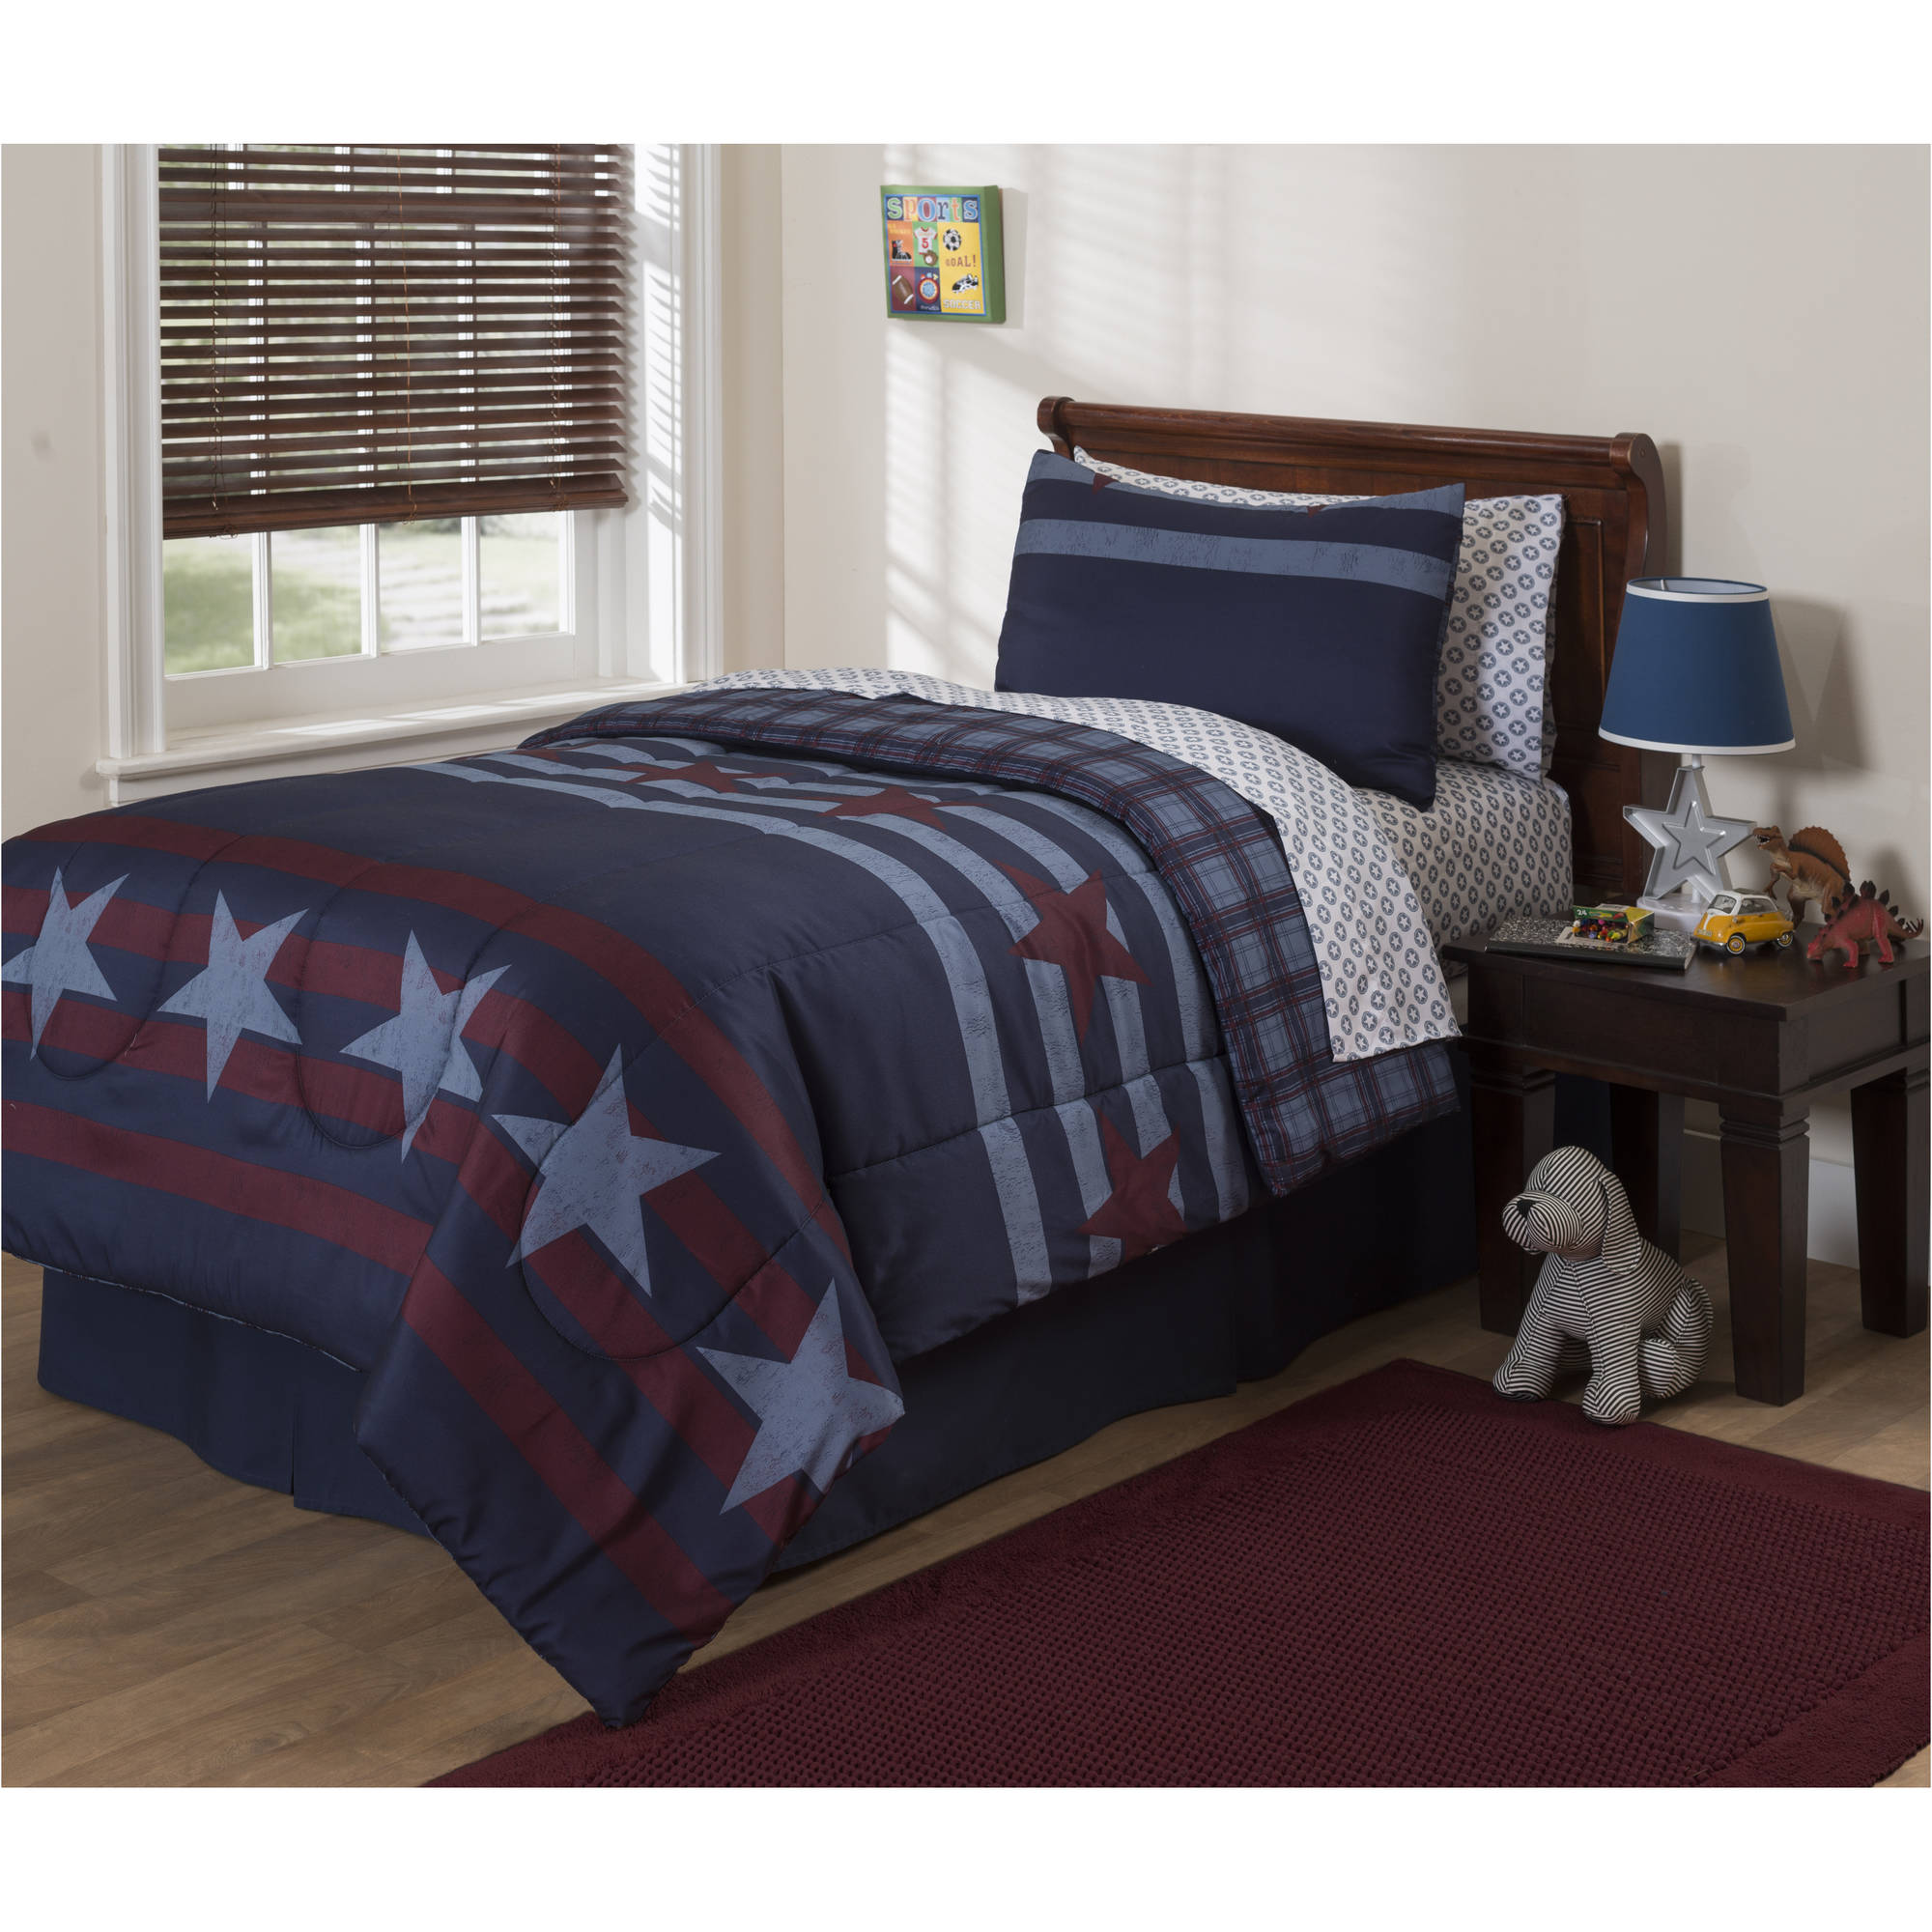 Mainstays Kids Stars And Stripes 5-Piece Bed in a Bag Bedding Set